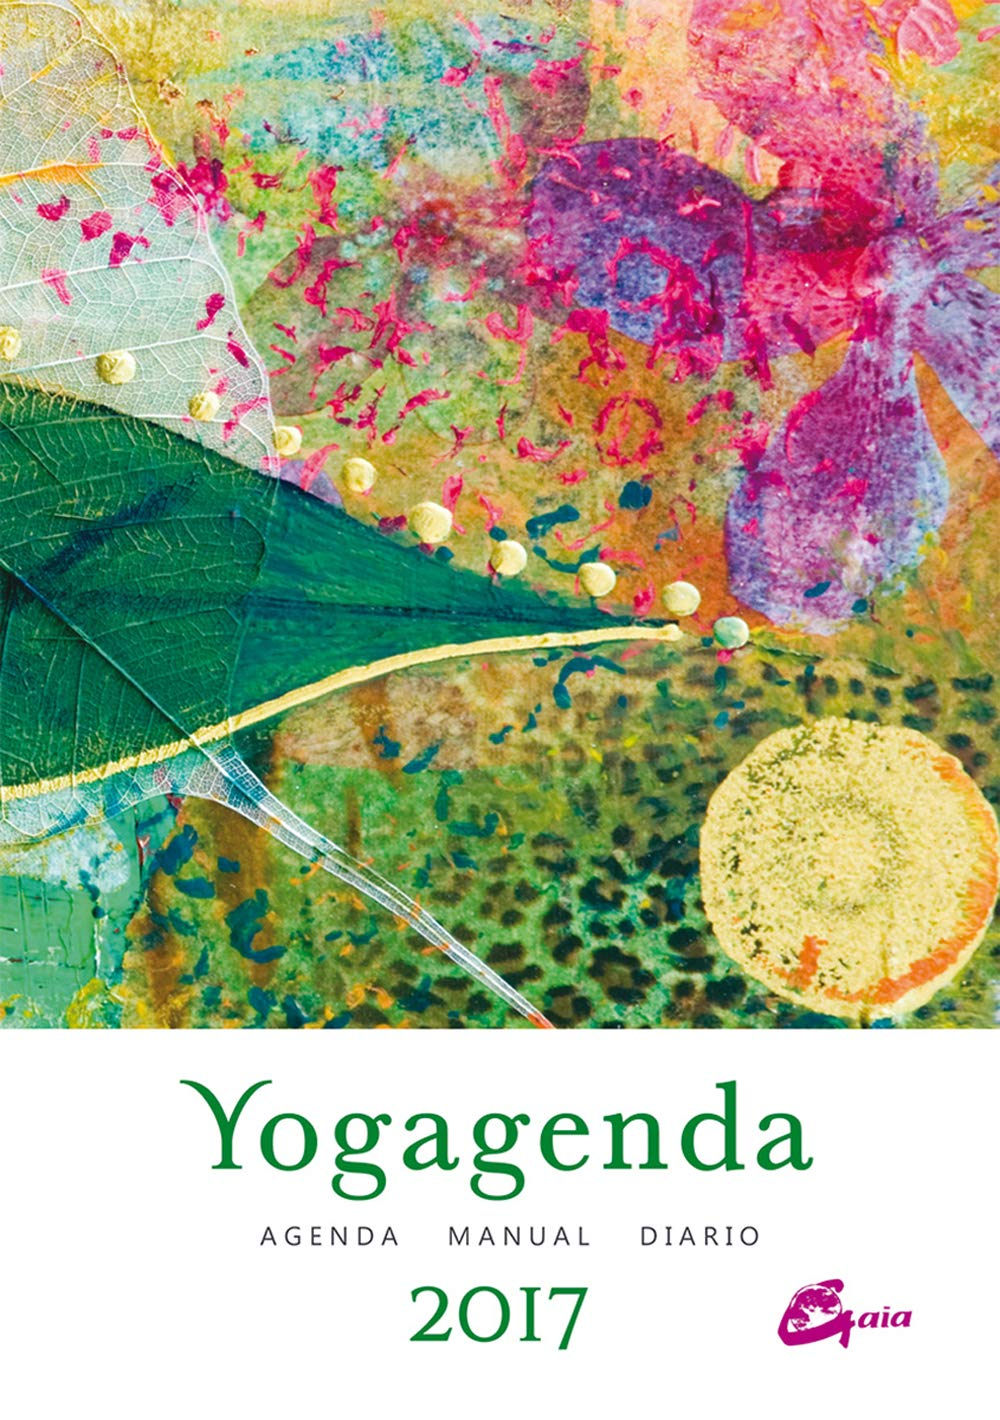 Yogagenda 2017. Agenda, Manual, Diario: Agenda | Manual ...